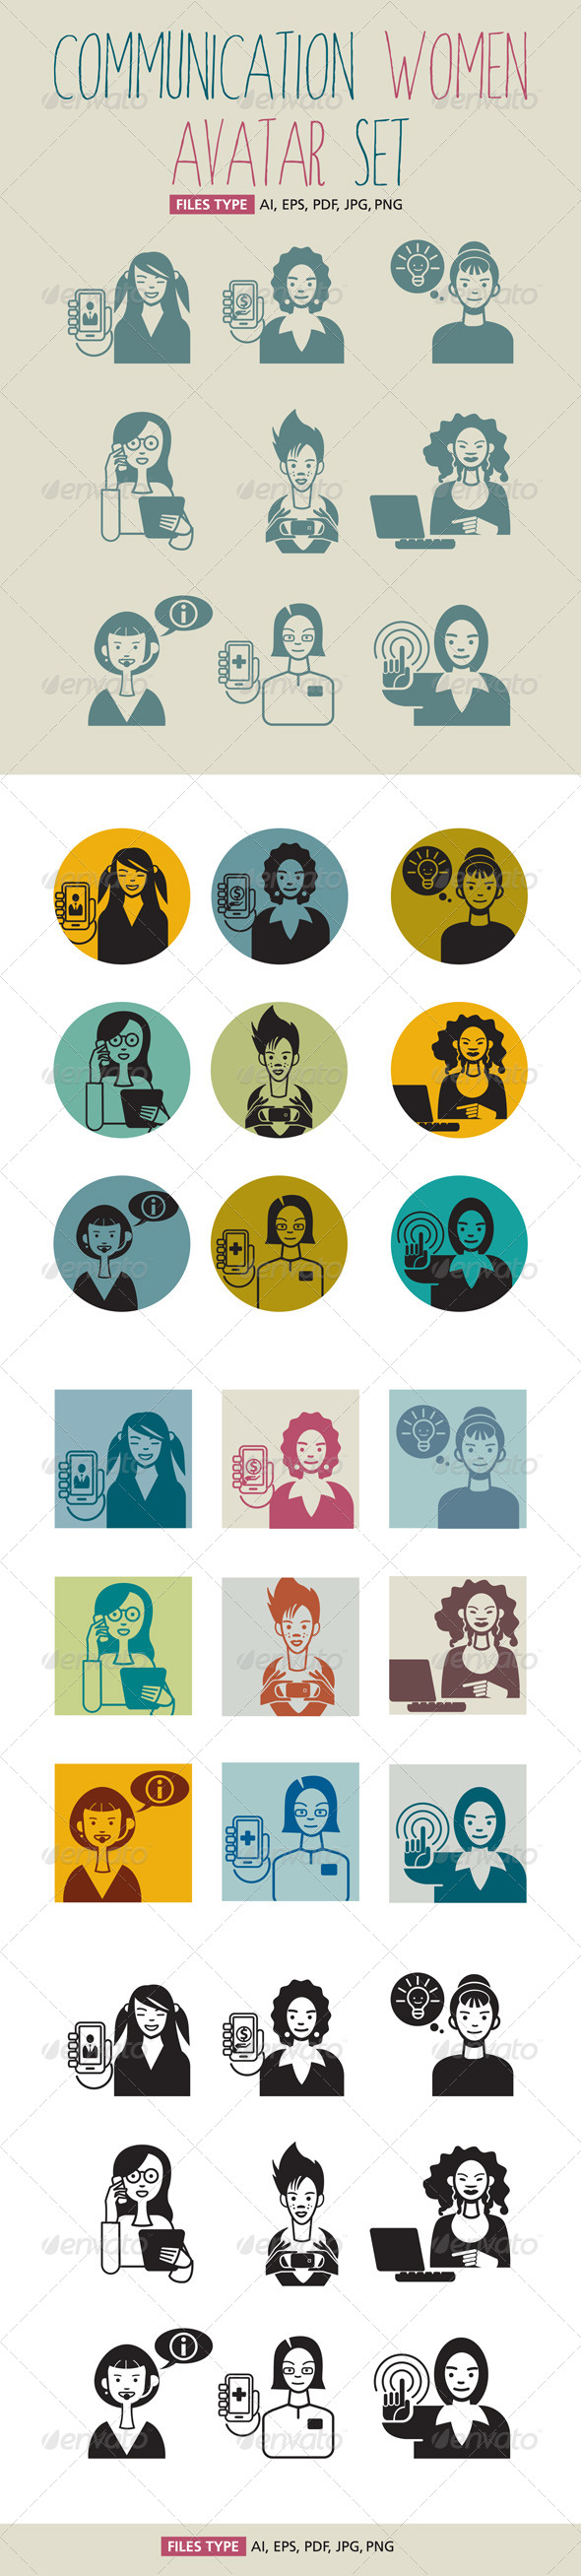 GraphicRiver Communication Women Avatar Set 5039118